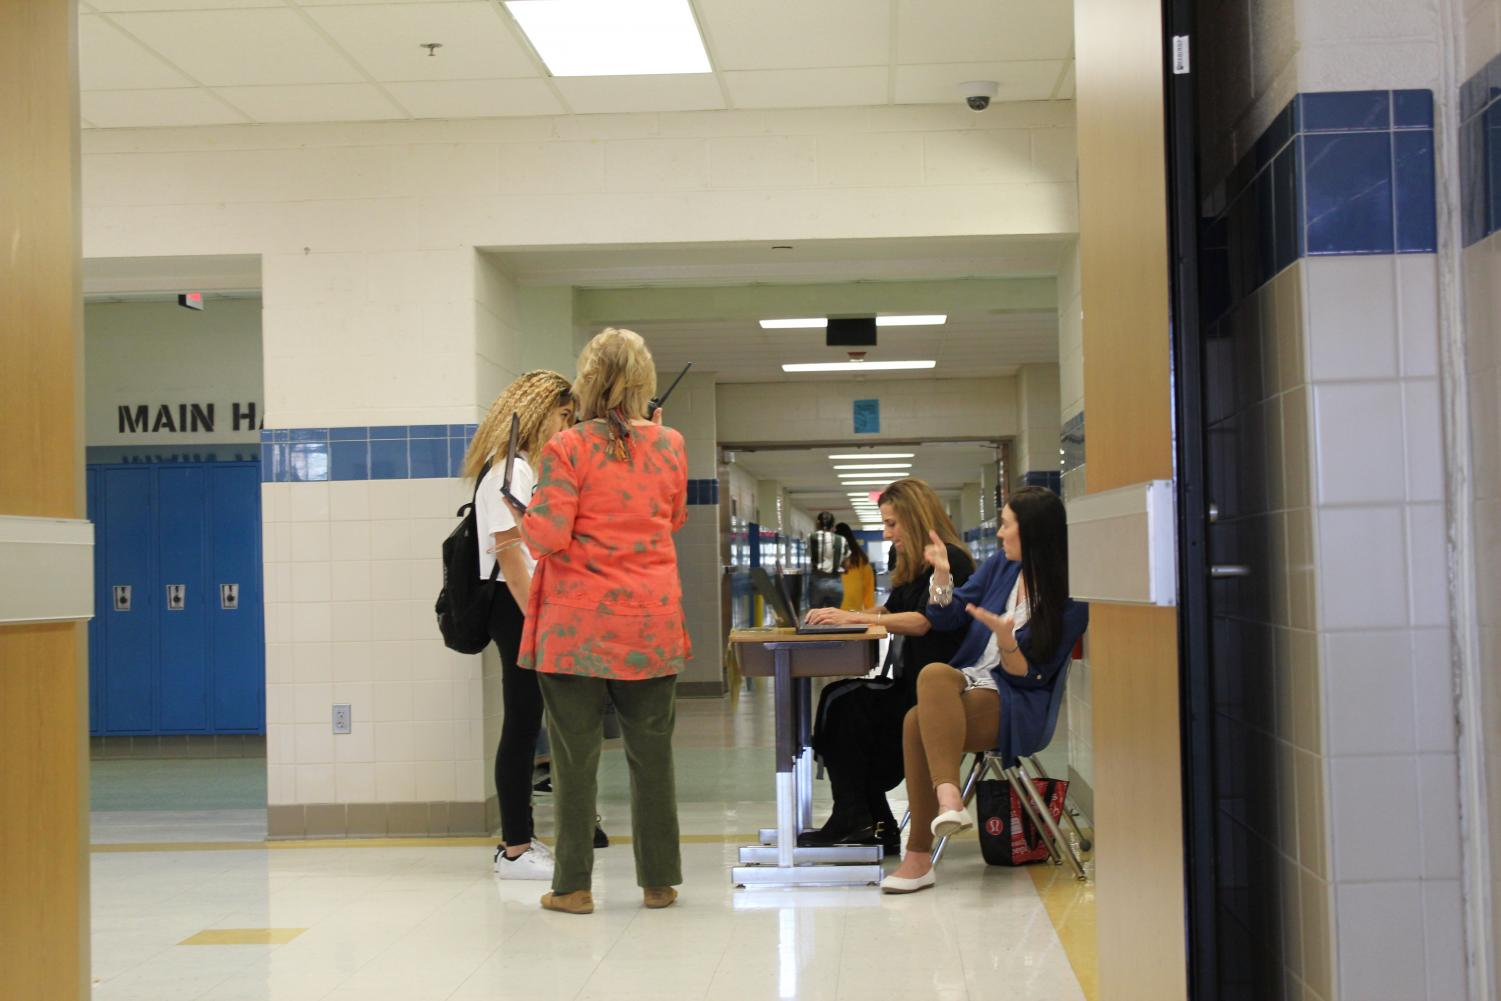 Systems of Support staff Donna Spitzer and Amy Lee as well as counselor Jennifer Rogin-Marks write out a pass for a late student.